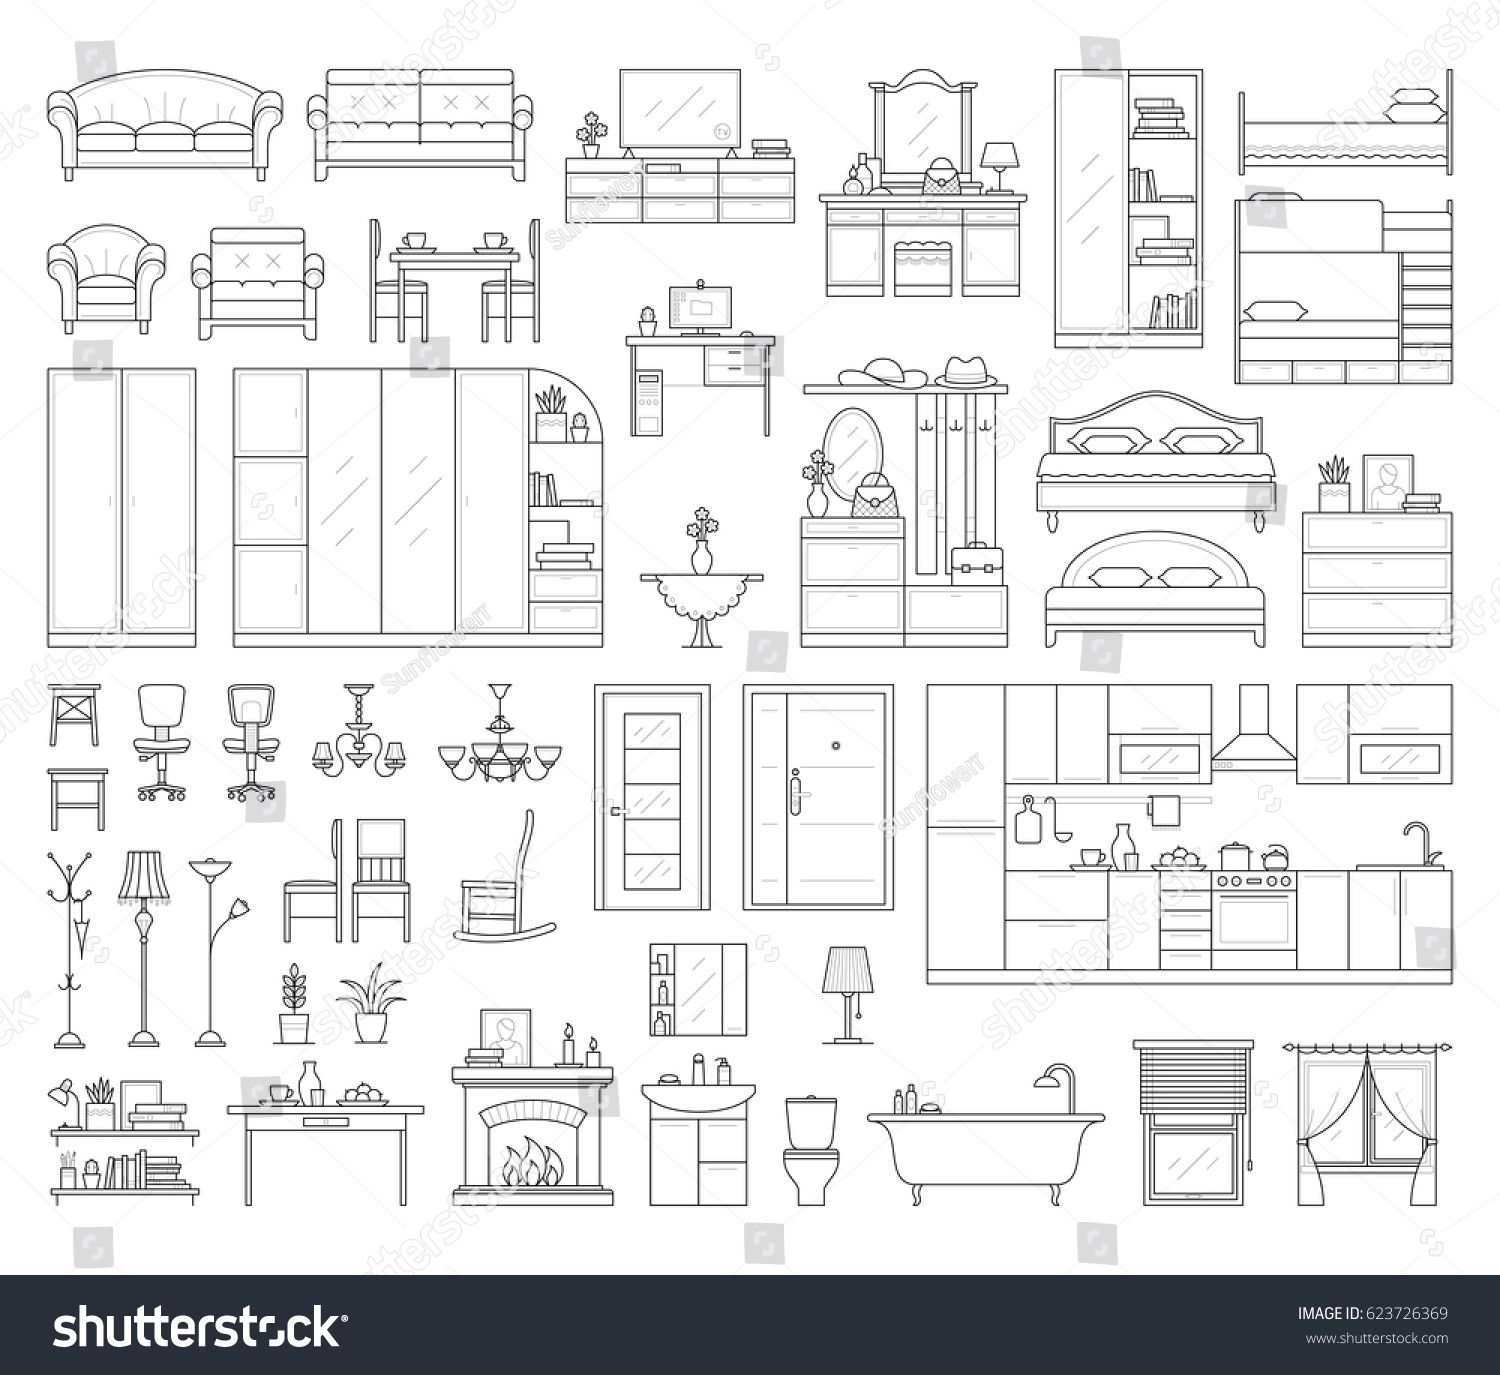 Vector Icons Set House Interior Furniture Stock Vector Royalty Free 623726369 In 2020 Furniture Design Sketches Interior Design Sketches Interior Design Drawings